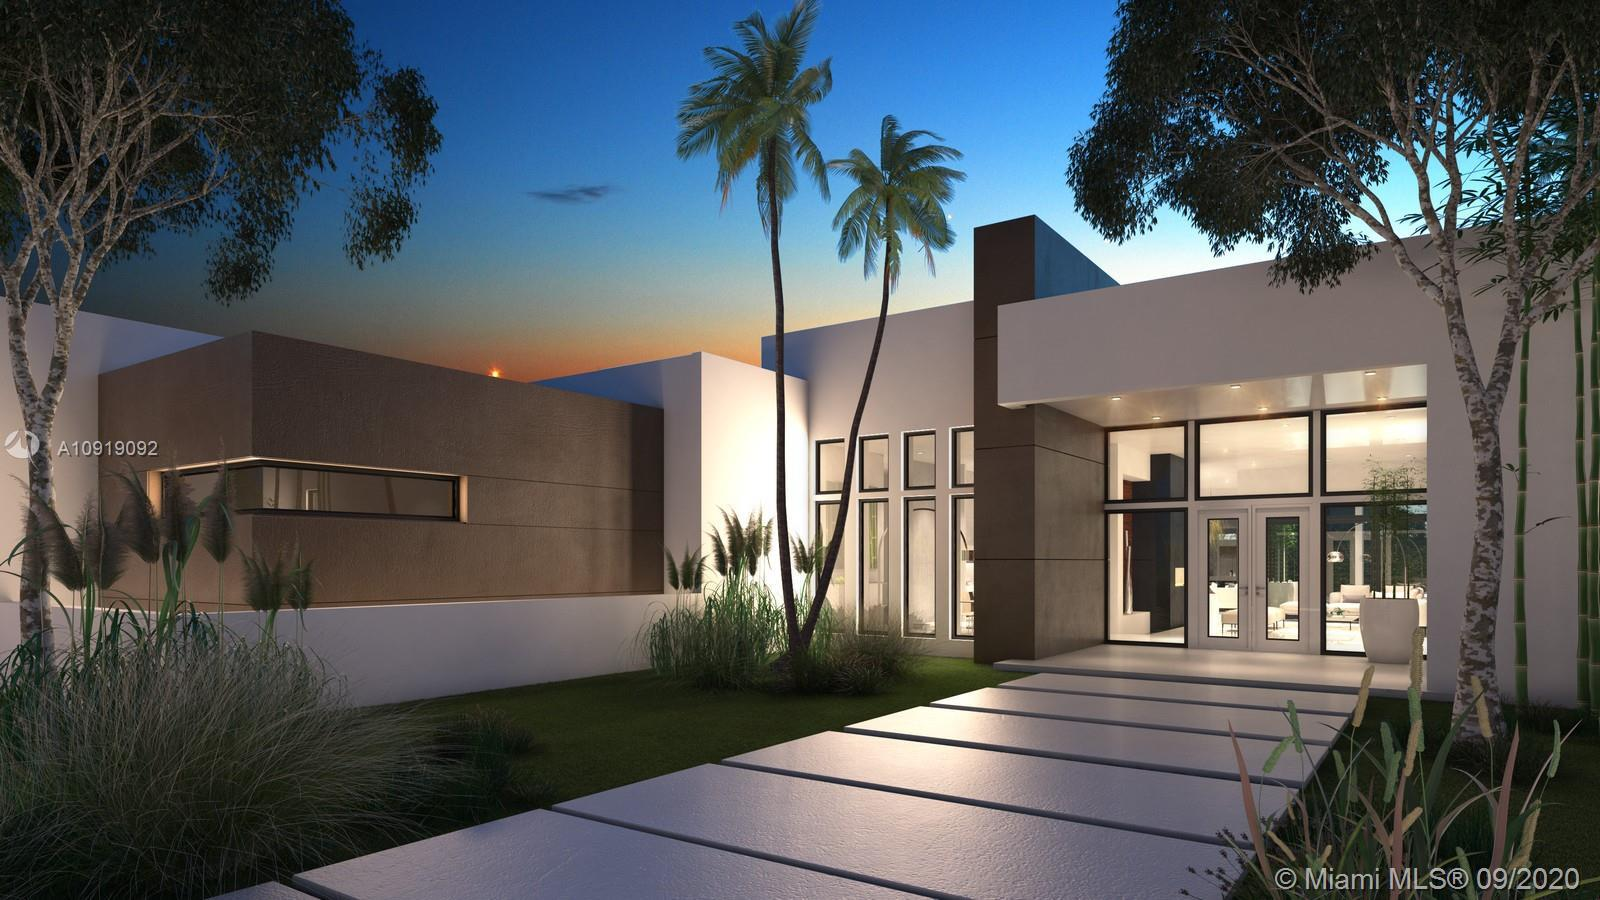 BRAND NEW CONSTRUCTION (Ready by Abril 3oth 2021), ultra contemporary total 7,000 sqf ONE STORY wond